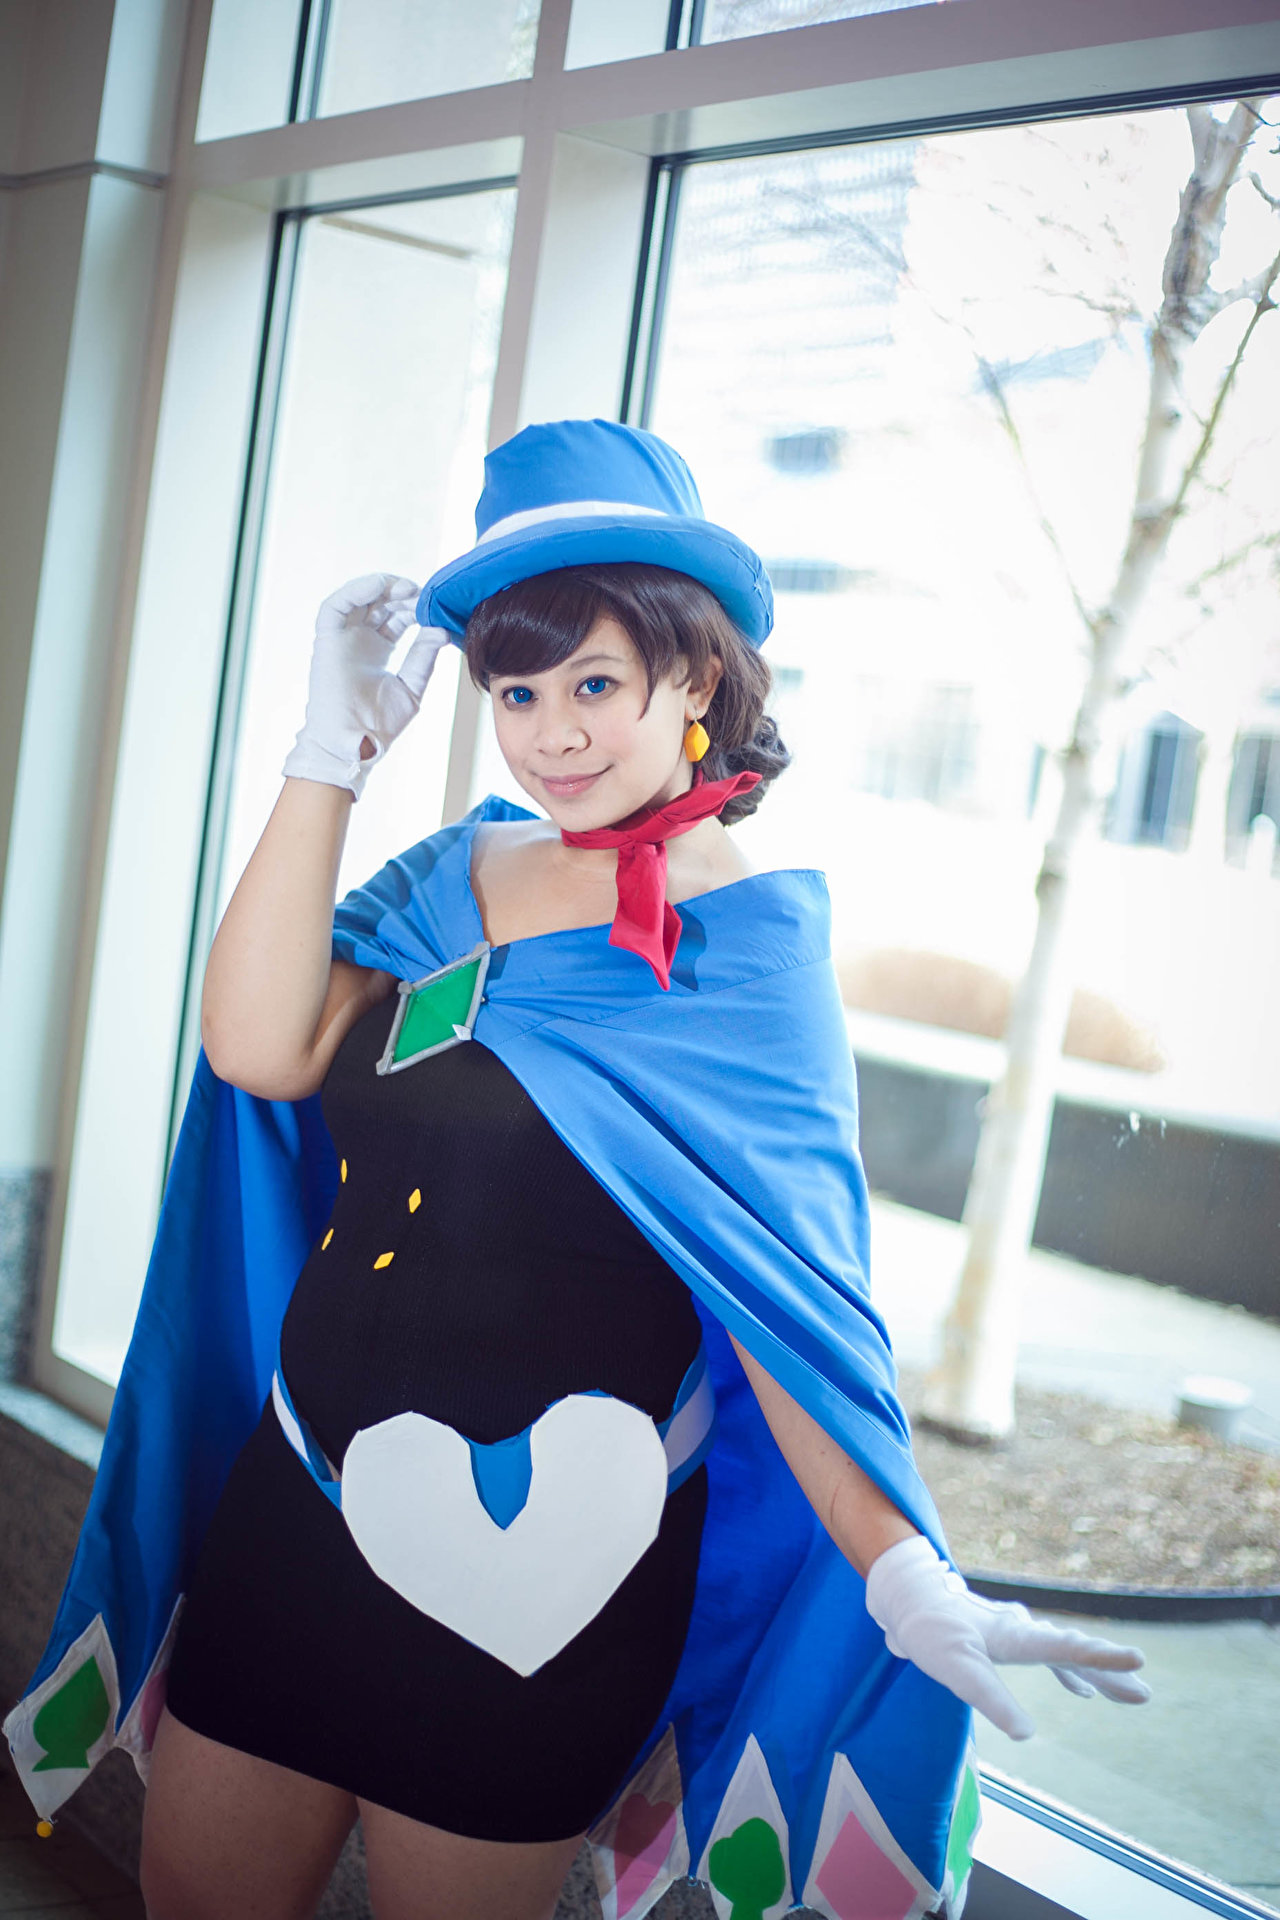 Trucy Wright (Ace Attorney)  photo:  vicissijuice